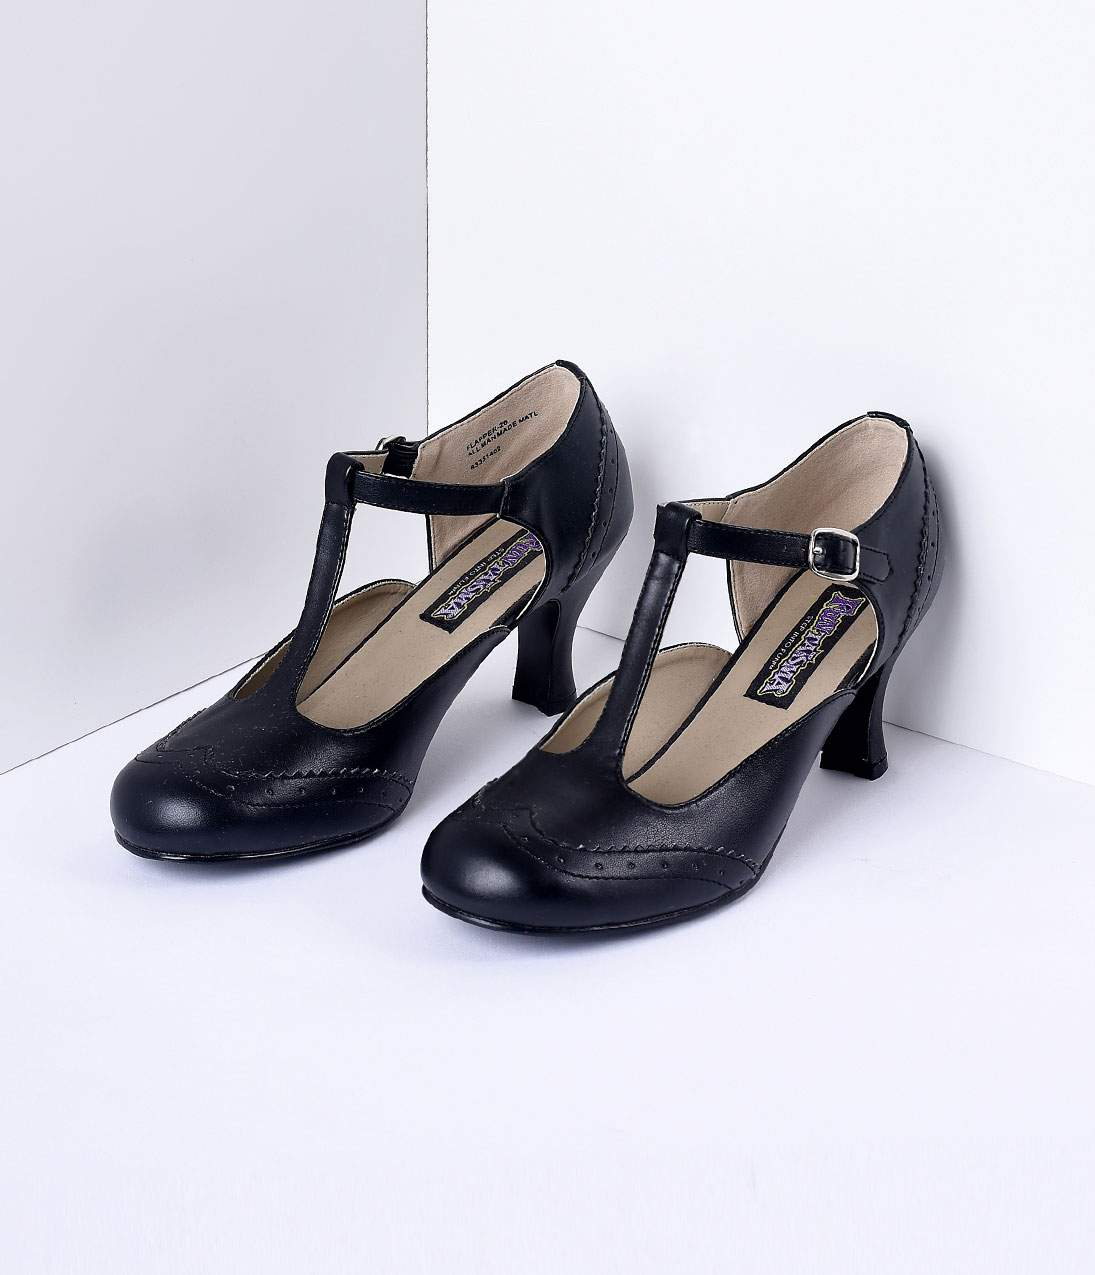 Vintage 1920s Shoe Styles Black T-Strap Mary Jane Kitten Heels $58.00 AT vintagedancer.com